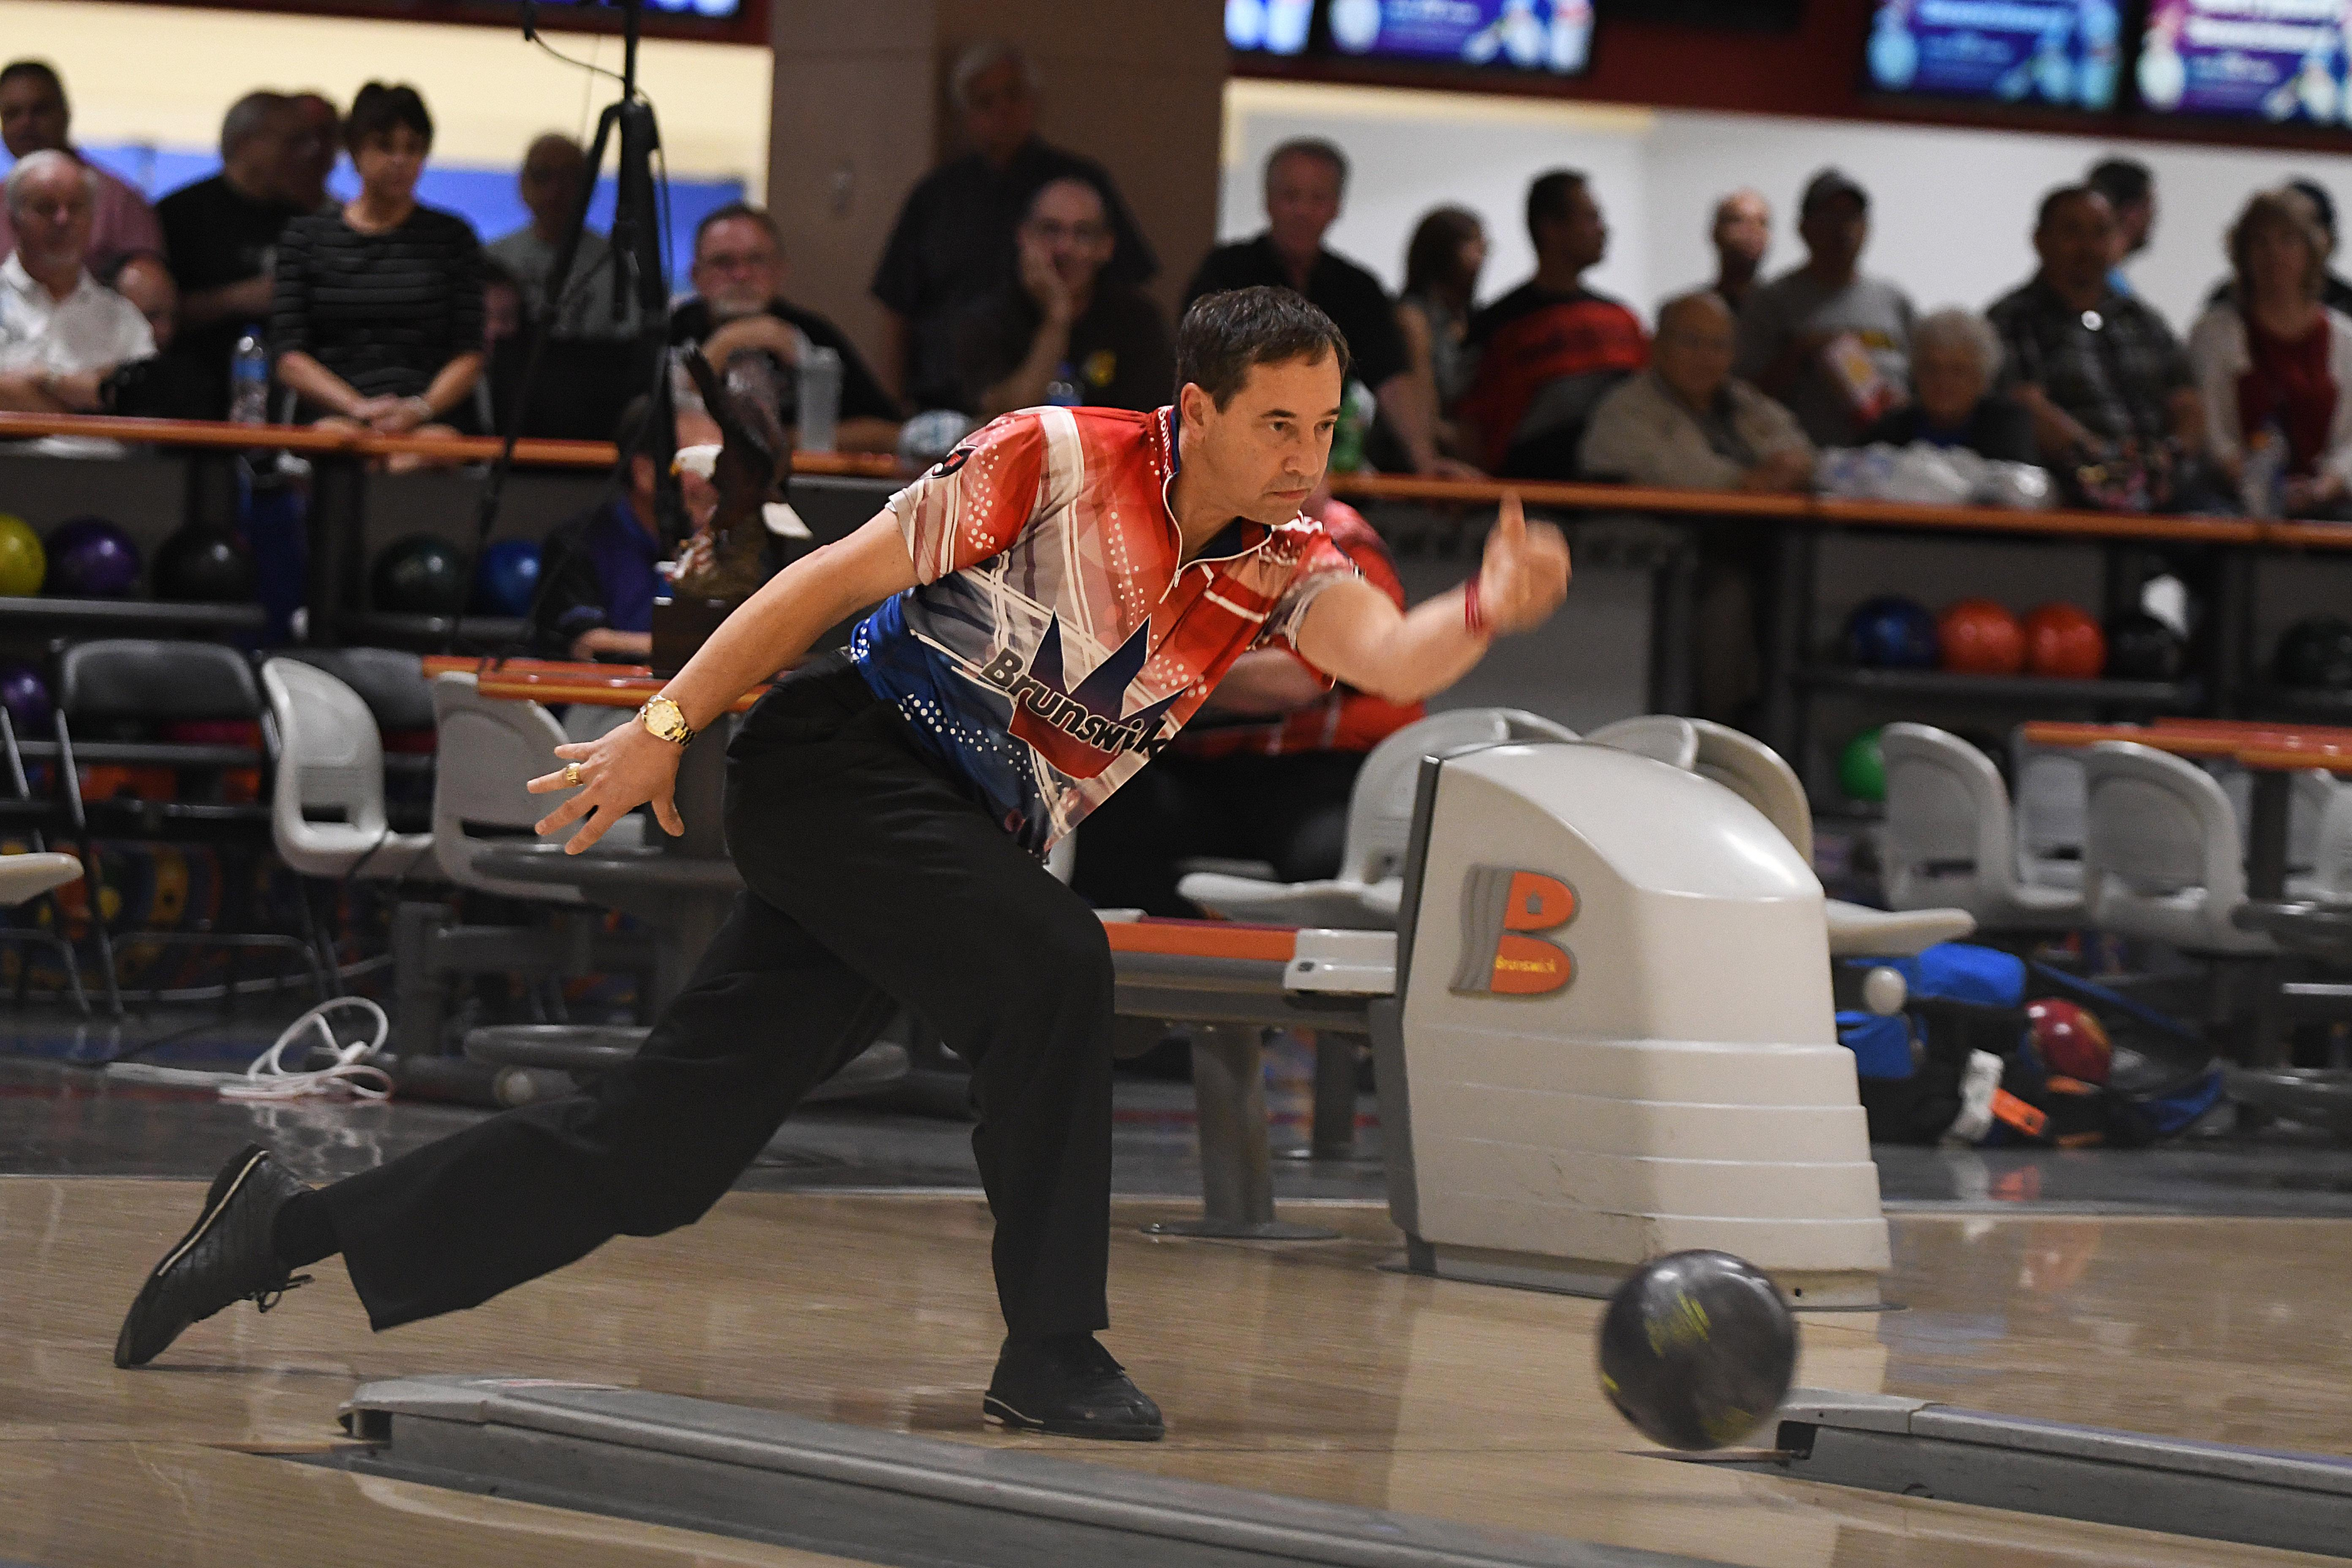 Parker Bohn III Tops Qualifying at PBA50 David Small's JAX 60 Classic